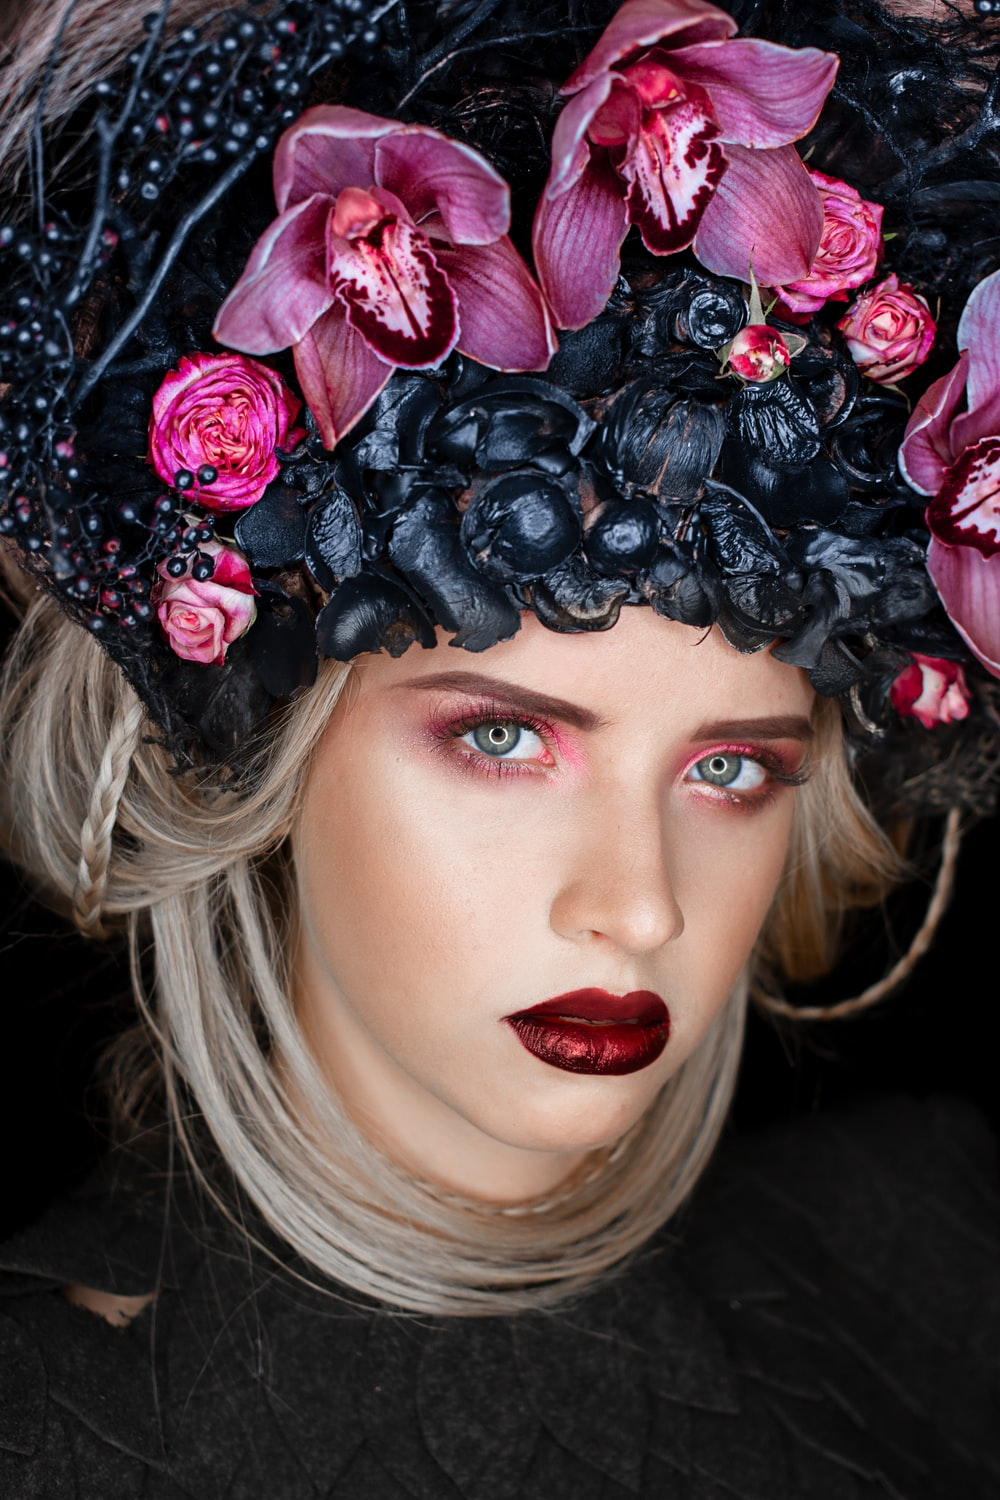 woman wearing black and purple flower headdress